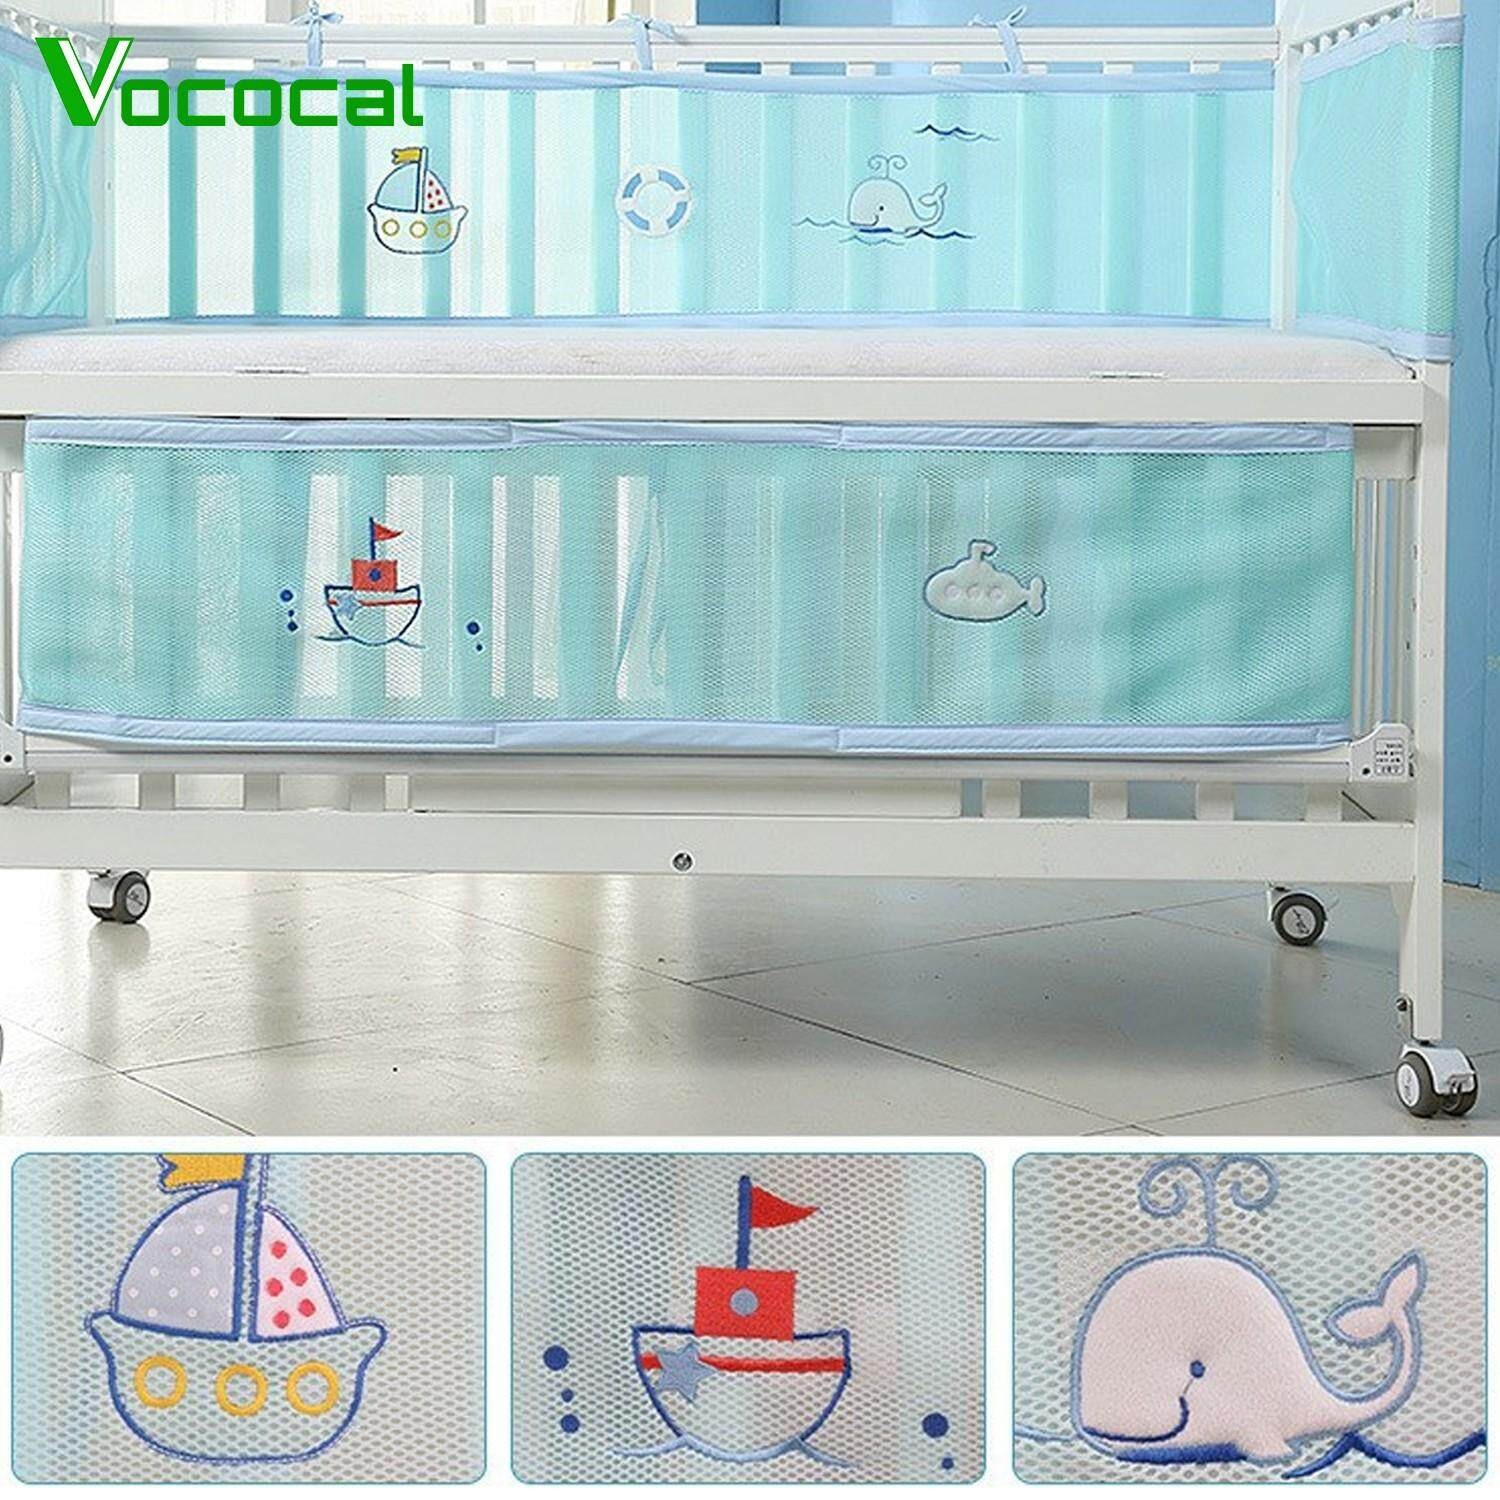 【Free shipping】Vococal 2PCS Cute Cartoon Breathable Washable Anti-Collision Anti-Fall Crib Bumper Liner Surround Pads for Infant Baby Toddler Boys Girls